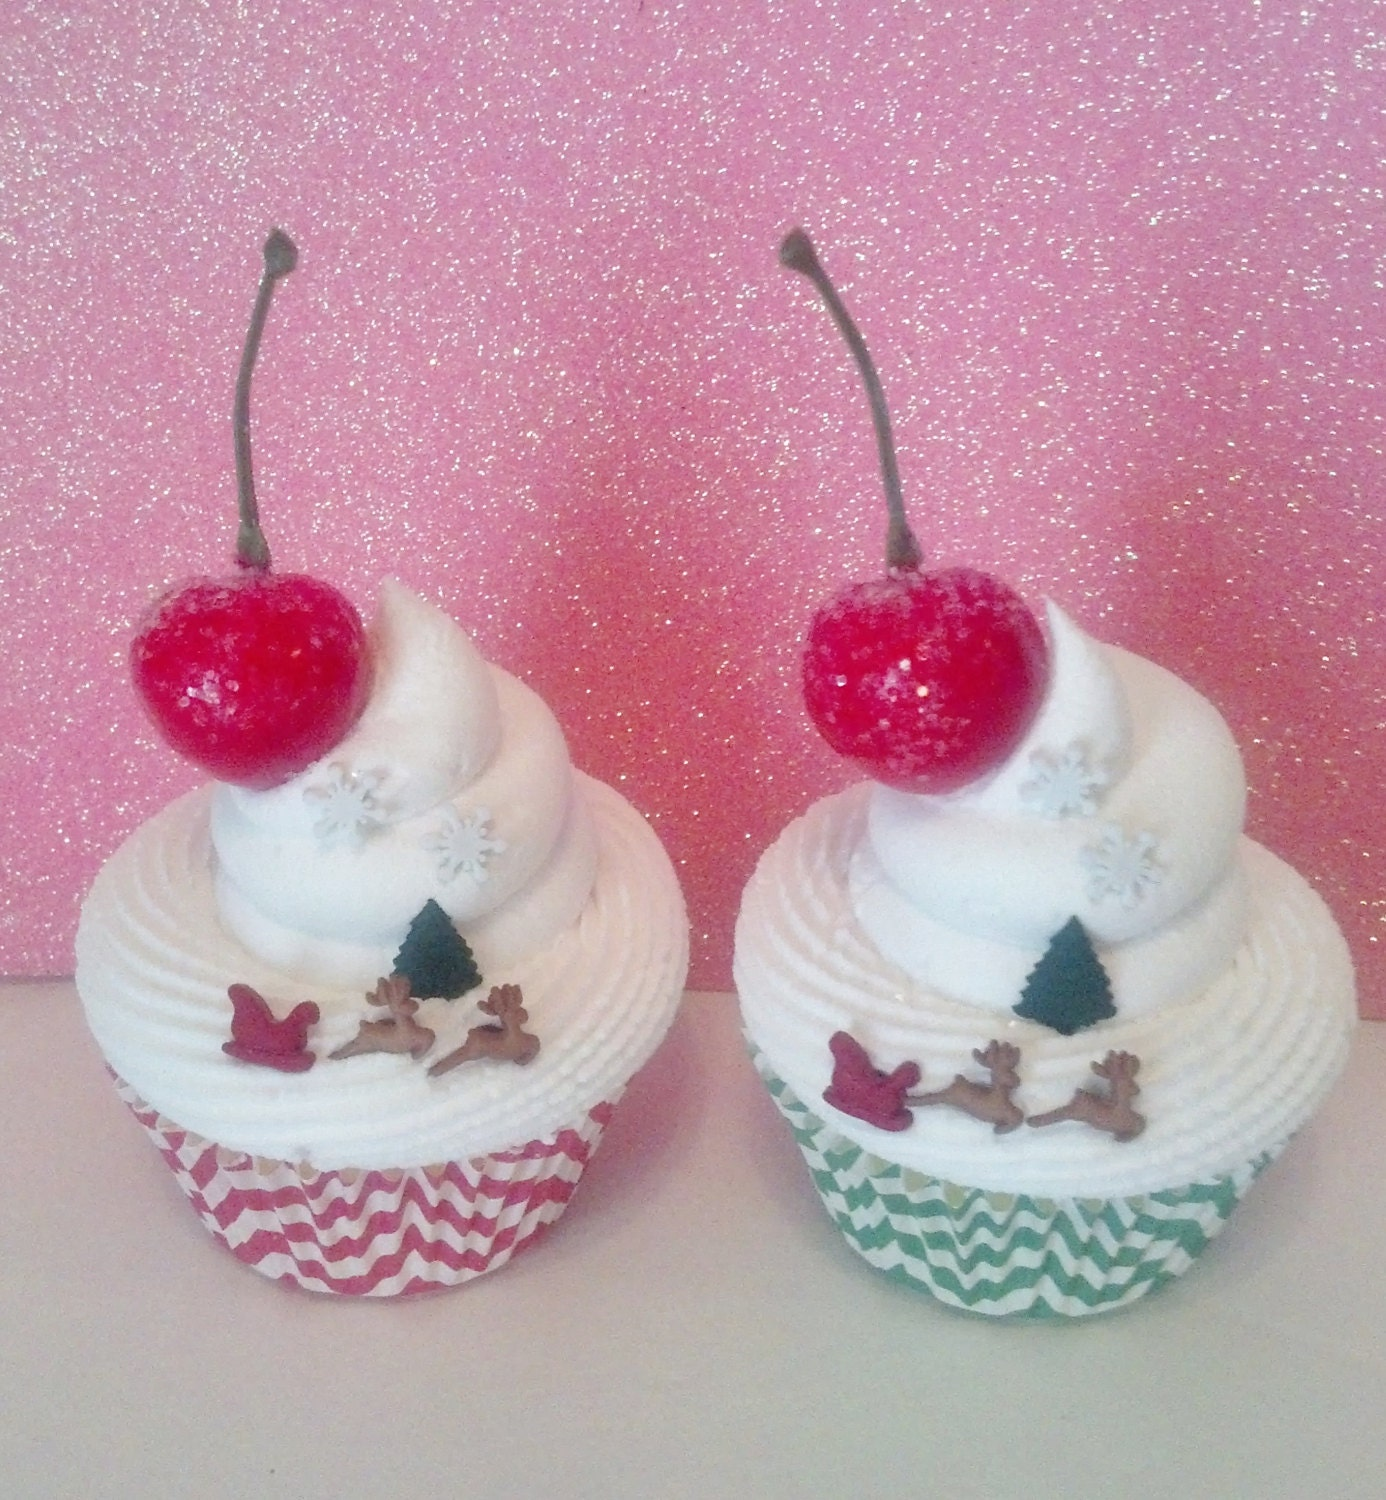 Chevron Christmas Fake Cupcake Photo Props, Holiday Decorations and Accents, Secret Santa Gifts, Shop Displays, Reindeer and Sleigh Cupcakes